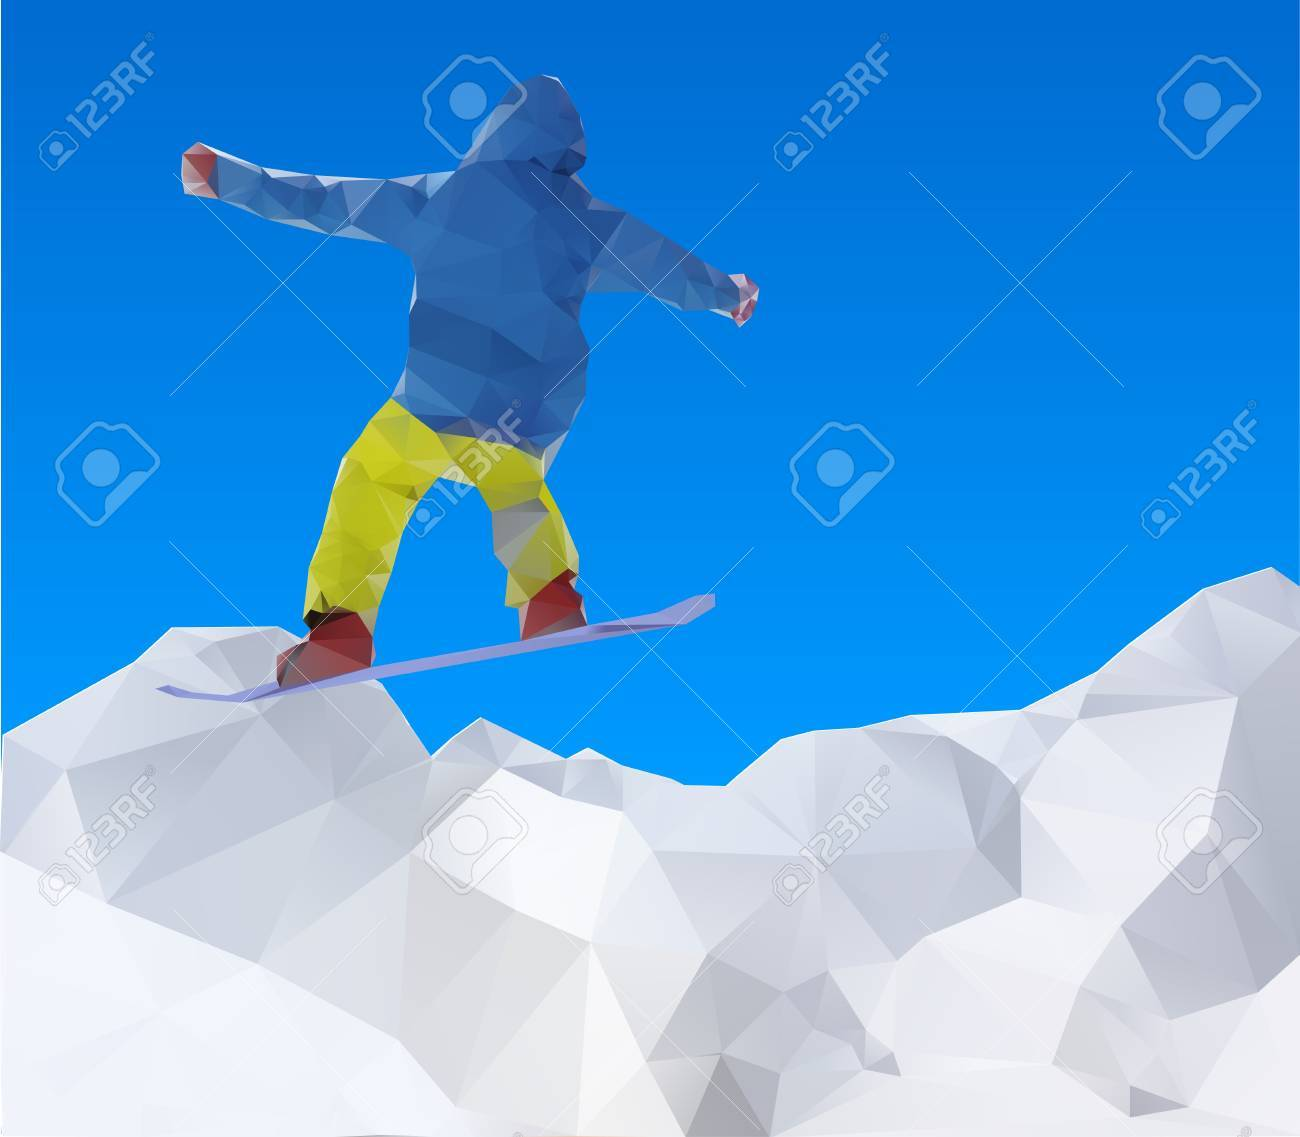 flying snowboarder on mountains Stock Vector - 16016888